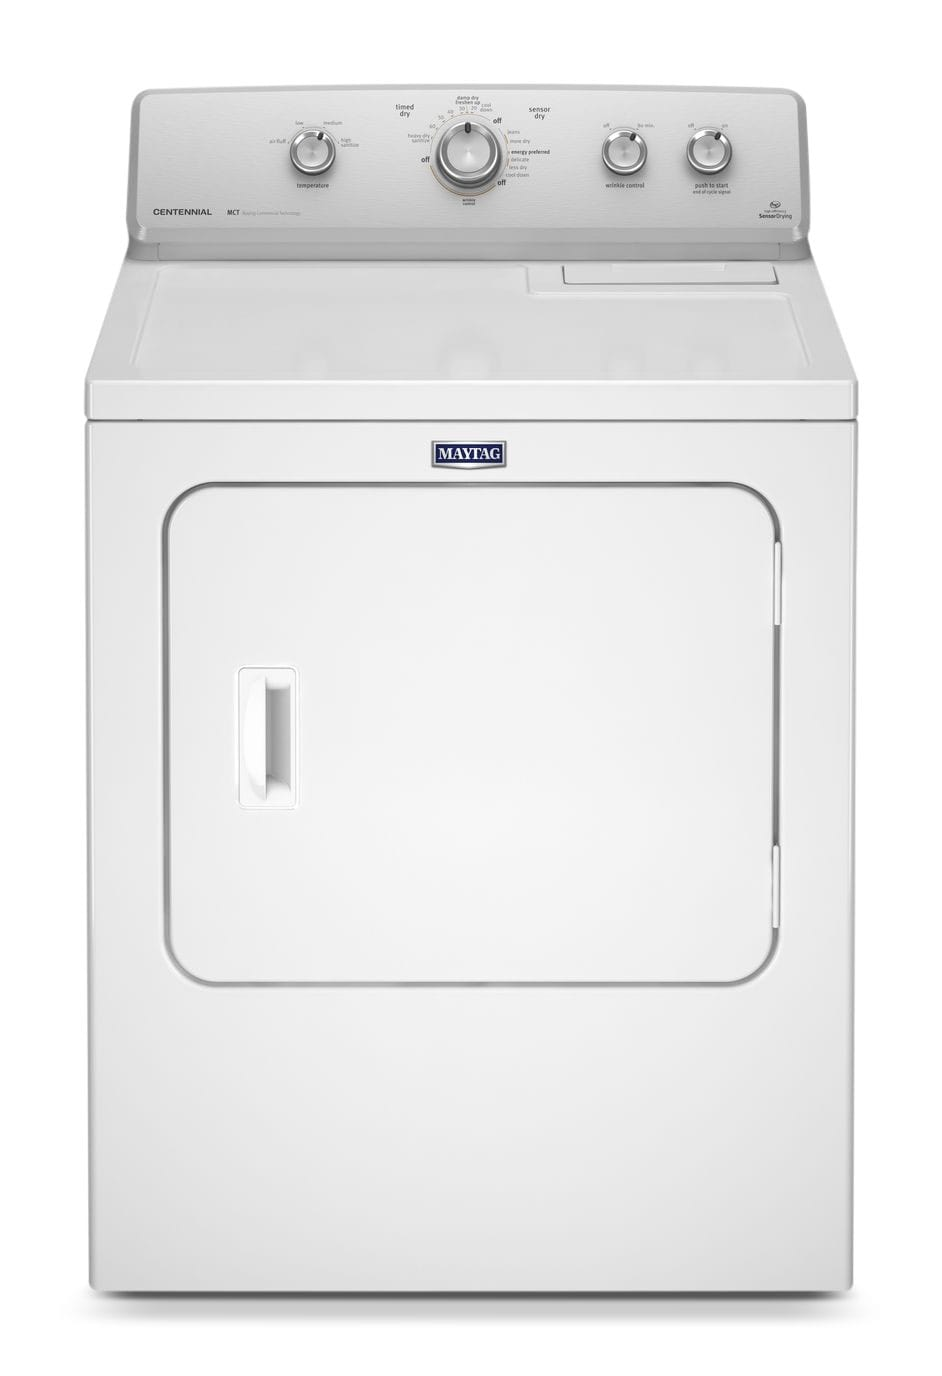 Washers and Dryers - Maytag Dryer (7.0 Cu. Ft.) YMEDC415EW